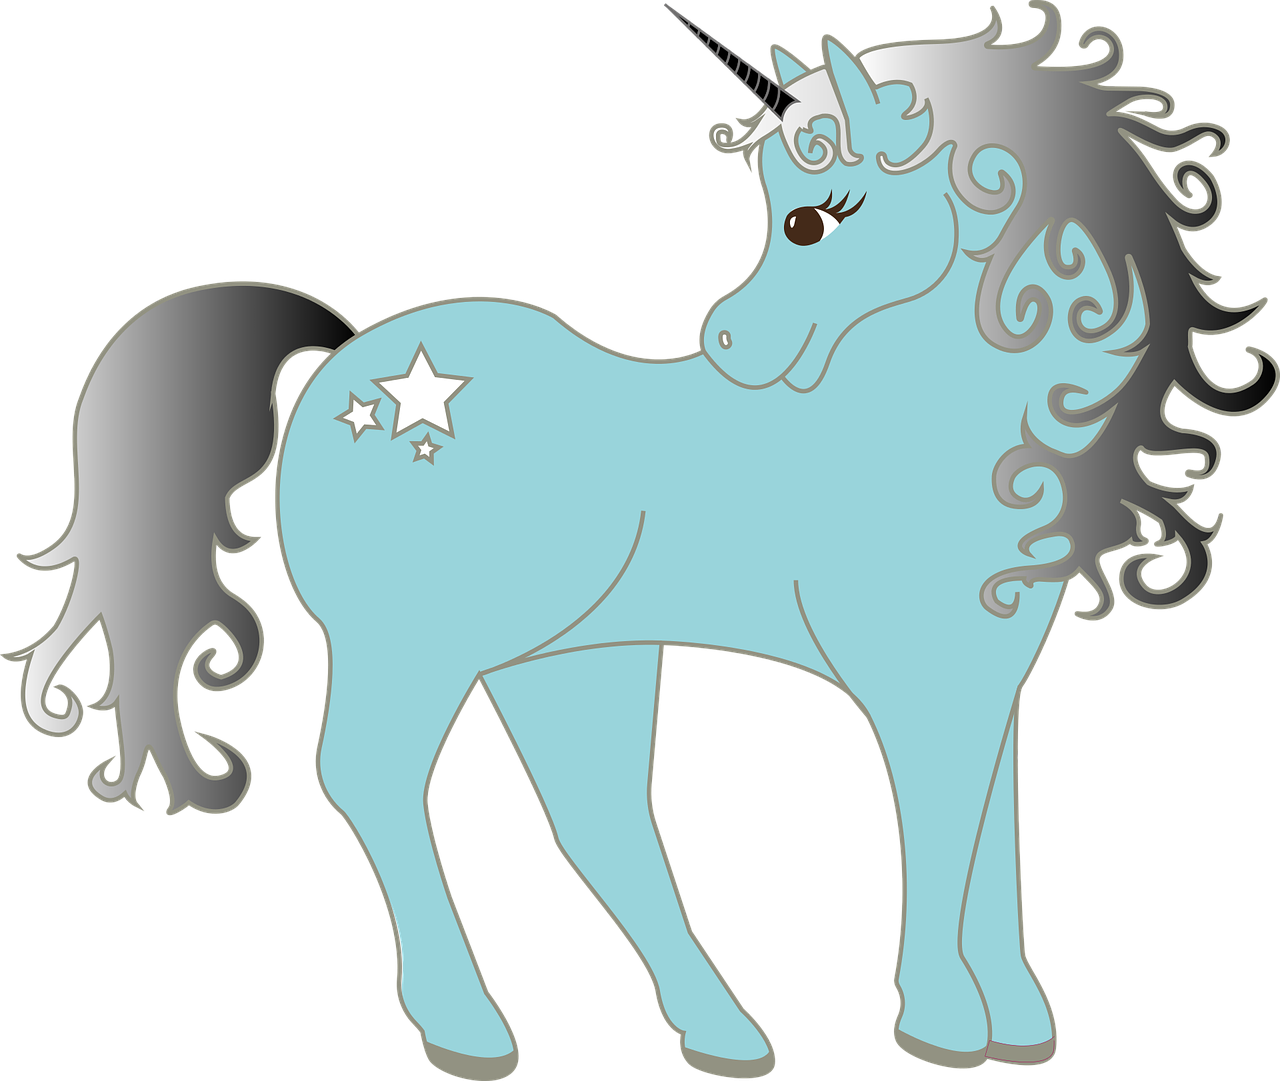 A drawing of a blue unicorn